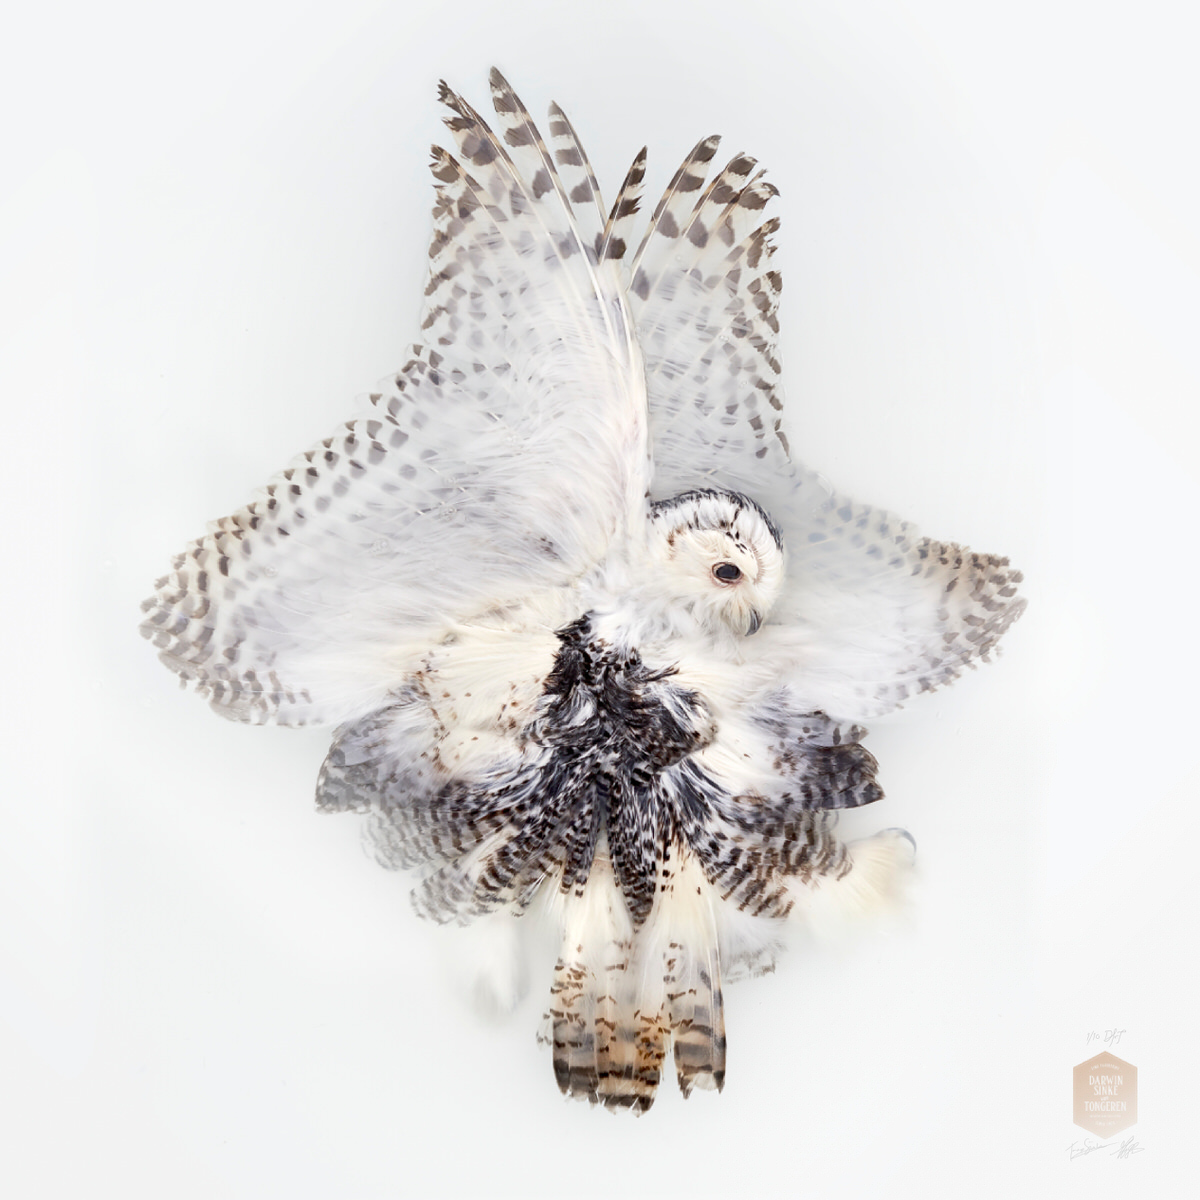 DSvT-Unknown Pose by Snowy Owl.jpg